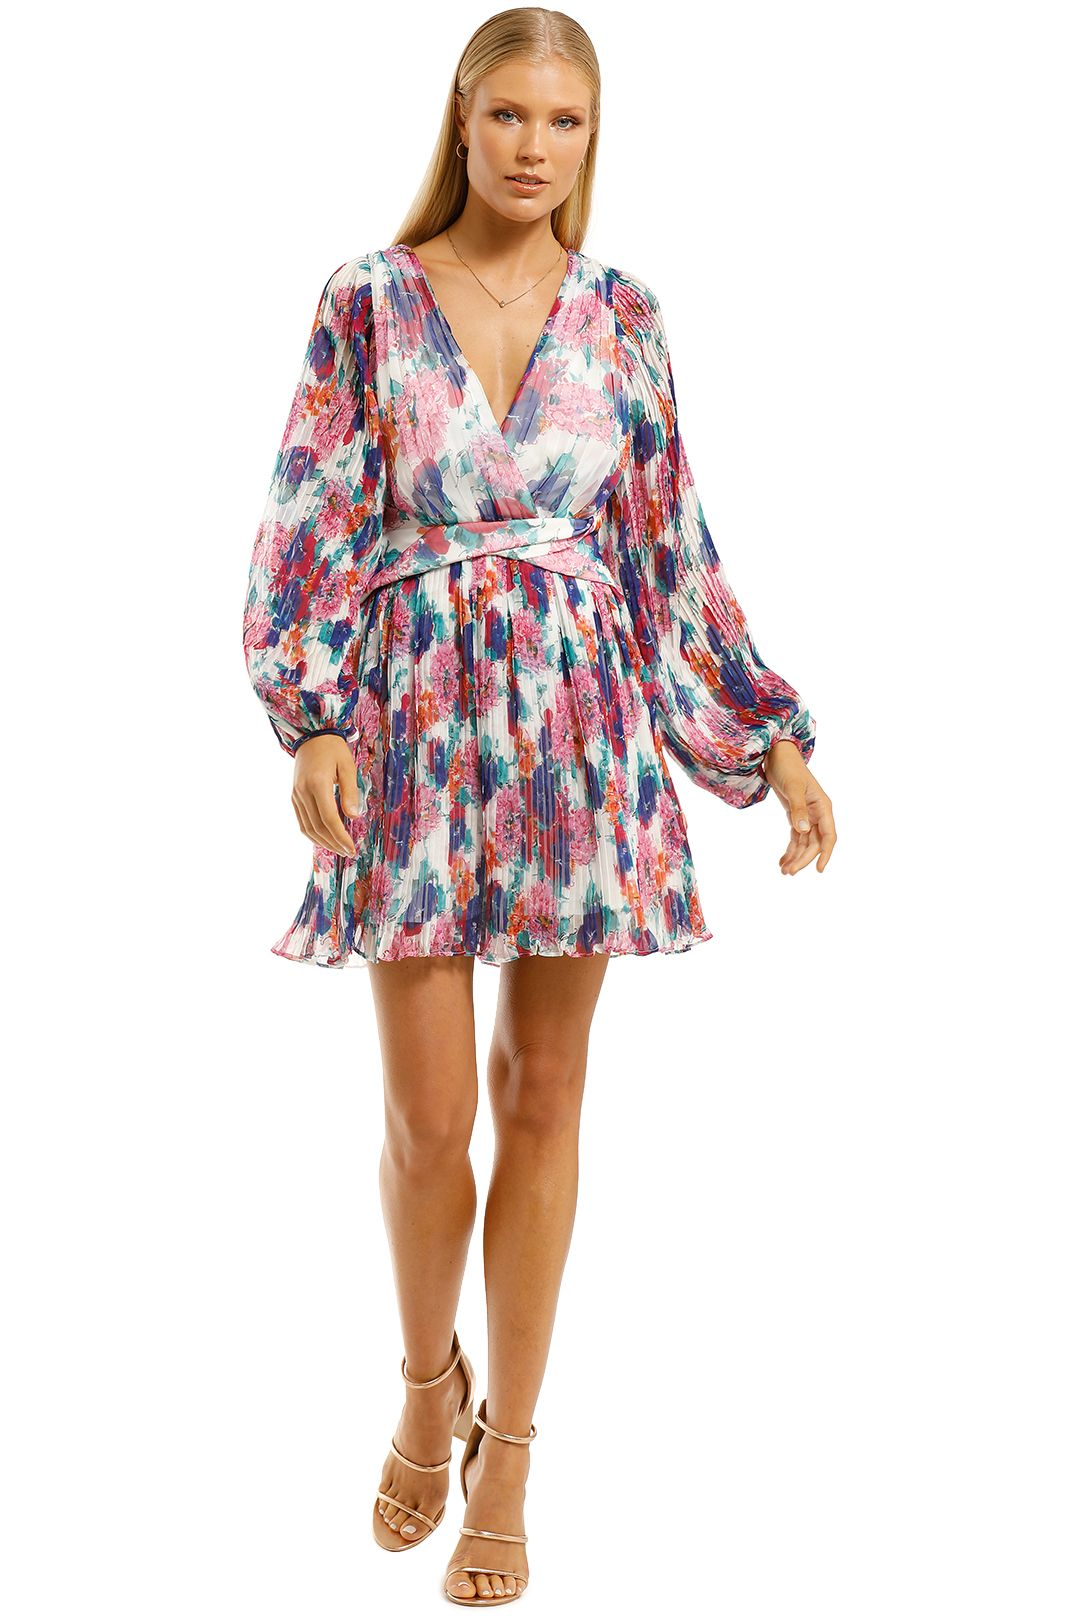 Talulah-Always-You-Mini-Dress-Floral-Fantasia-Print-Front